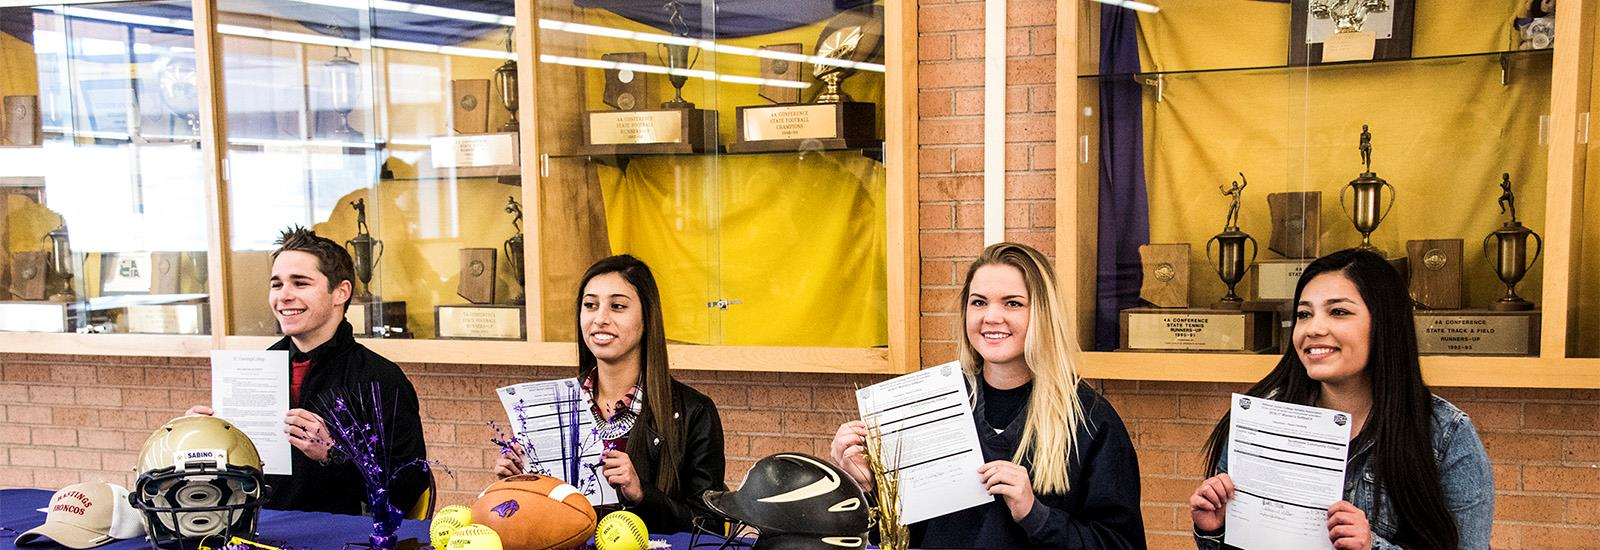 Many students select Sabino because of its outstanding athletics programS.